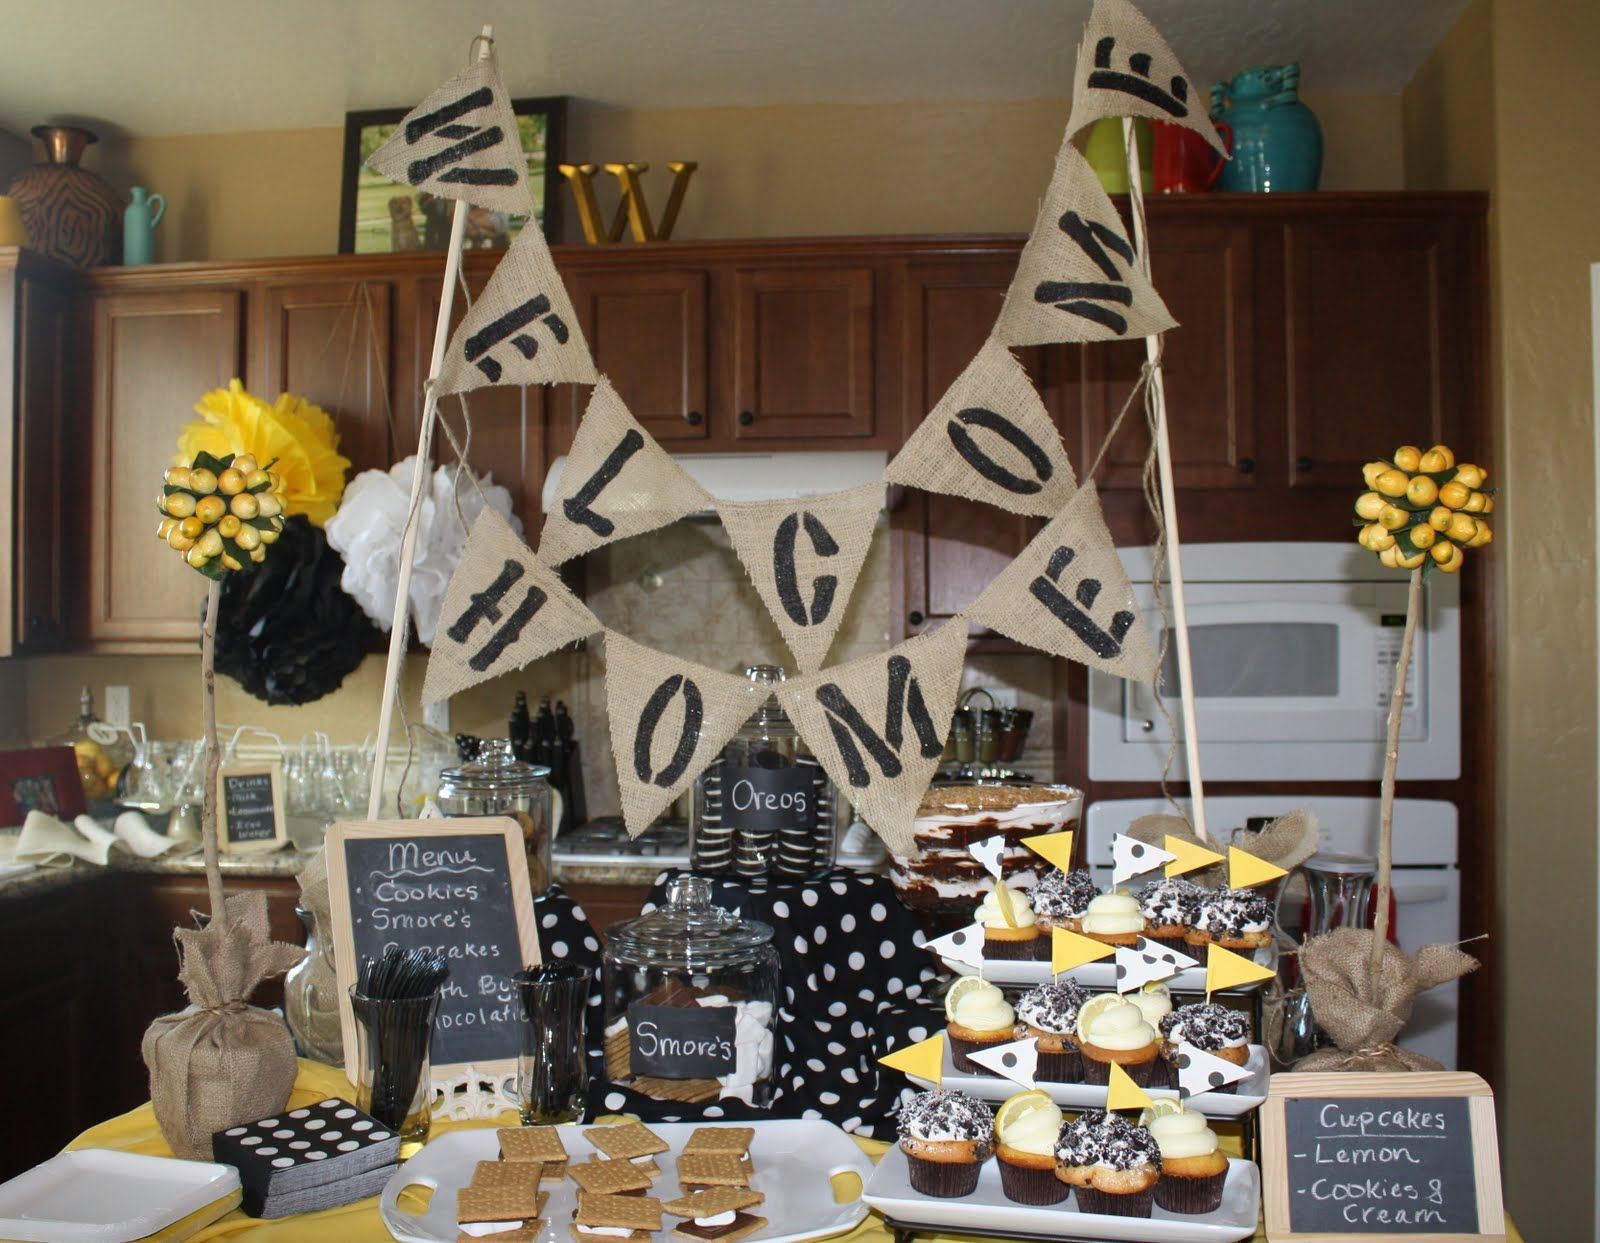 High Quality Yellow And Black Party Theme. Love All The Chalkboard Touches!